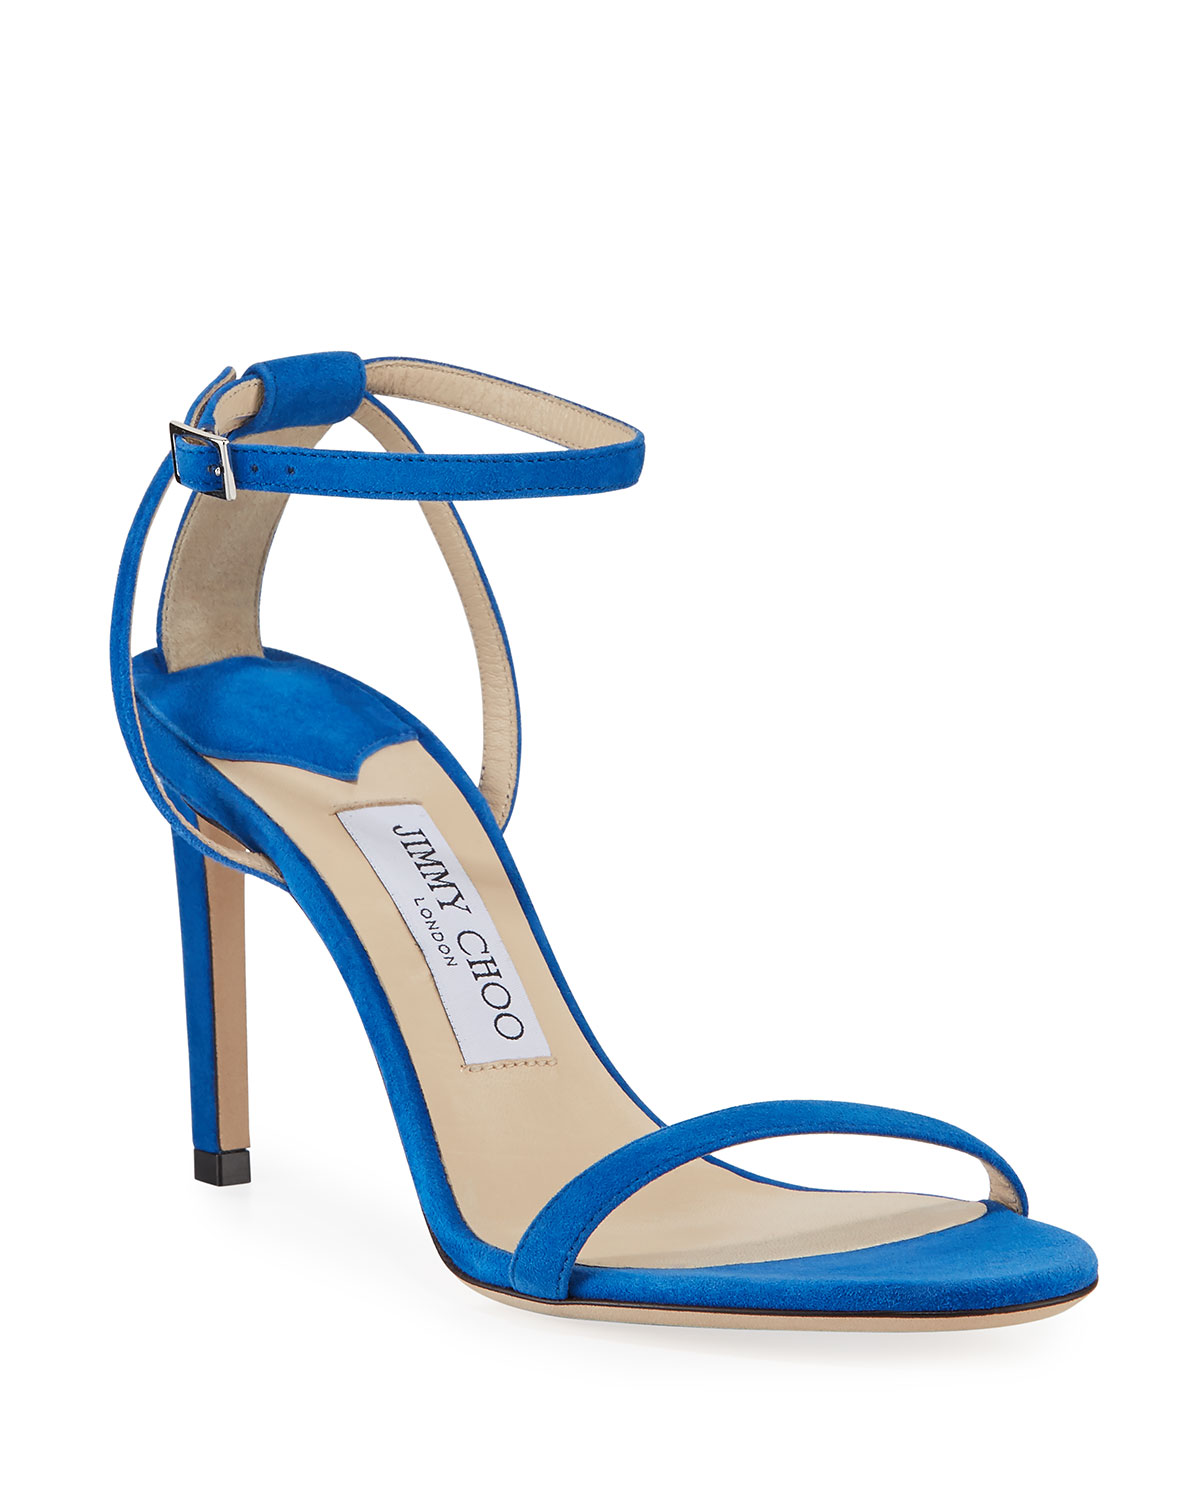 Minny Strappy Suede Sandals